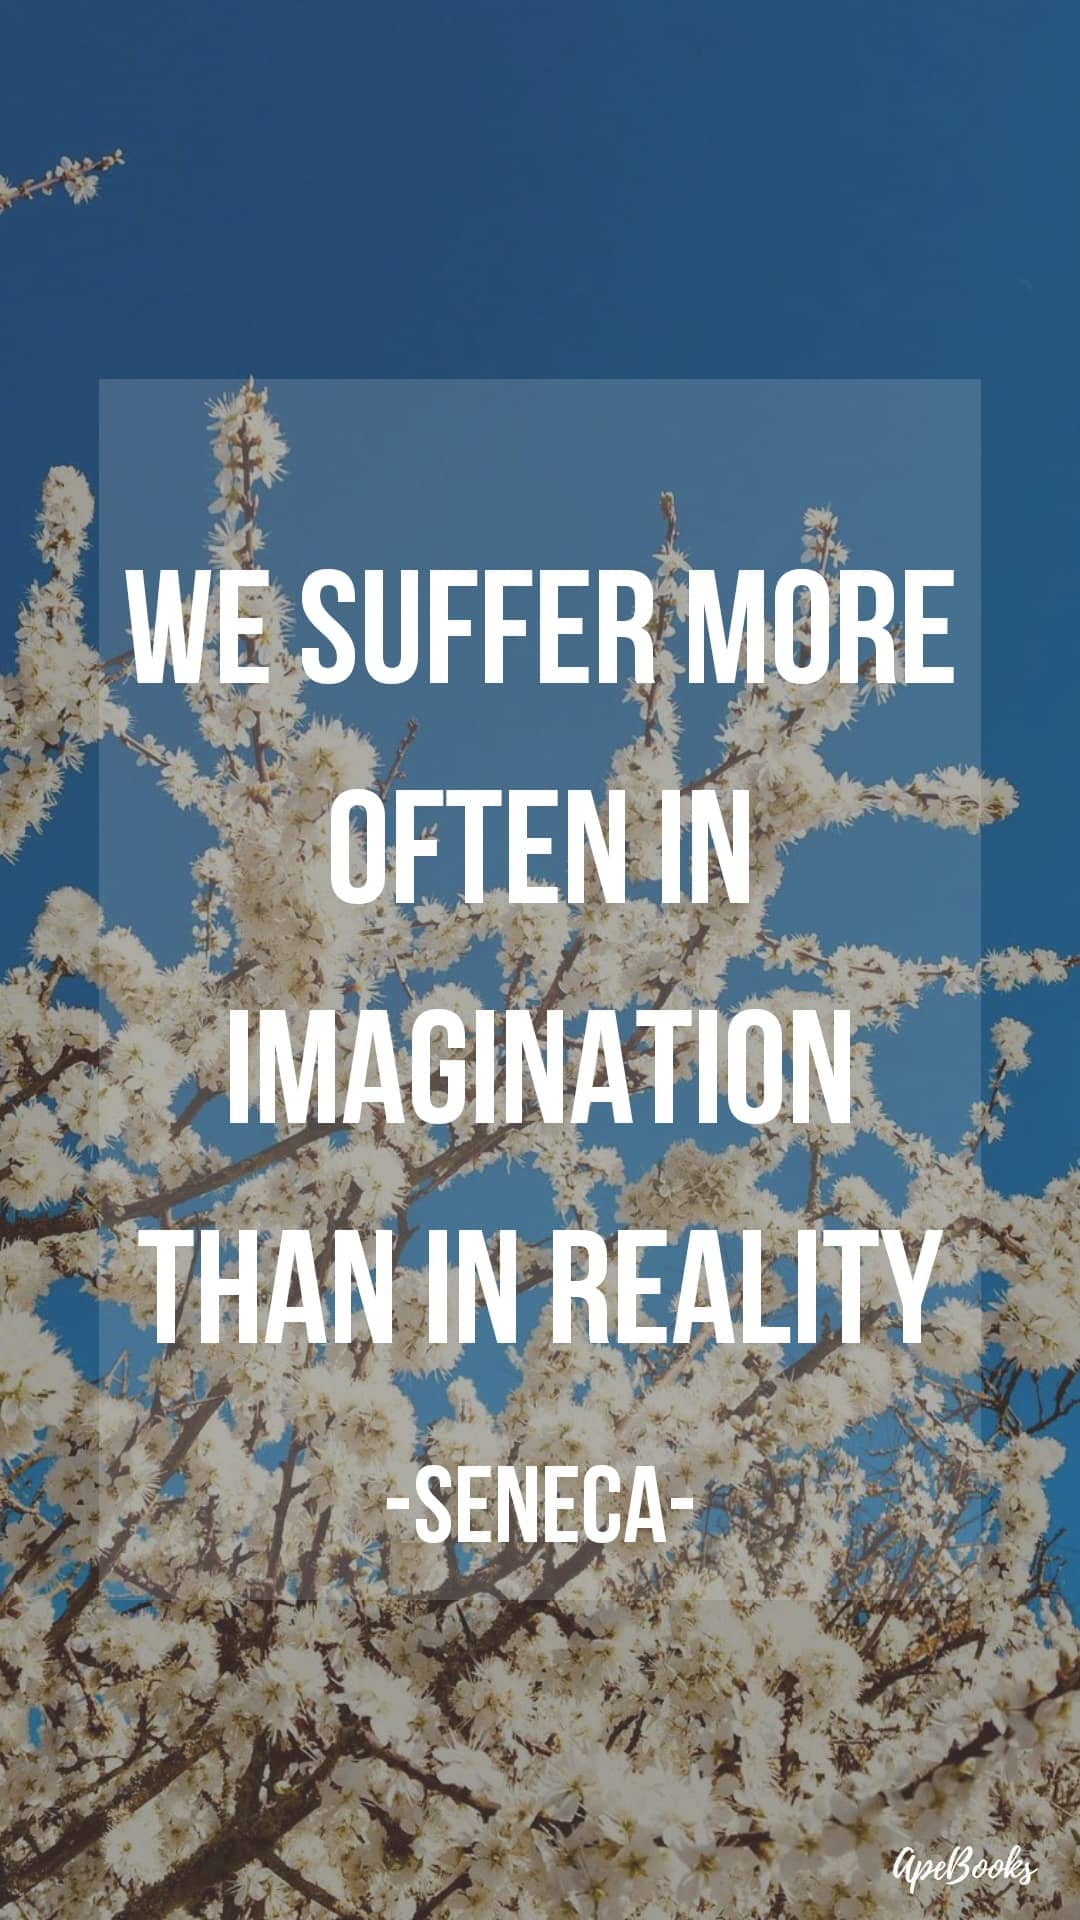 """We suffer more often in imagination than in reality"" -Seneca- [1080×1920]"